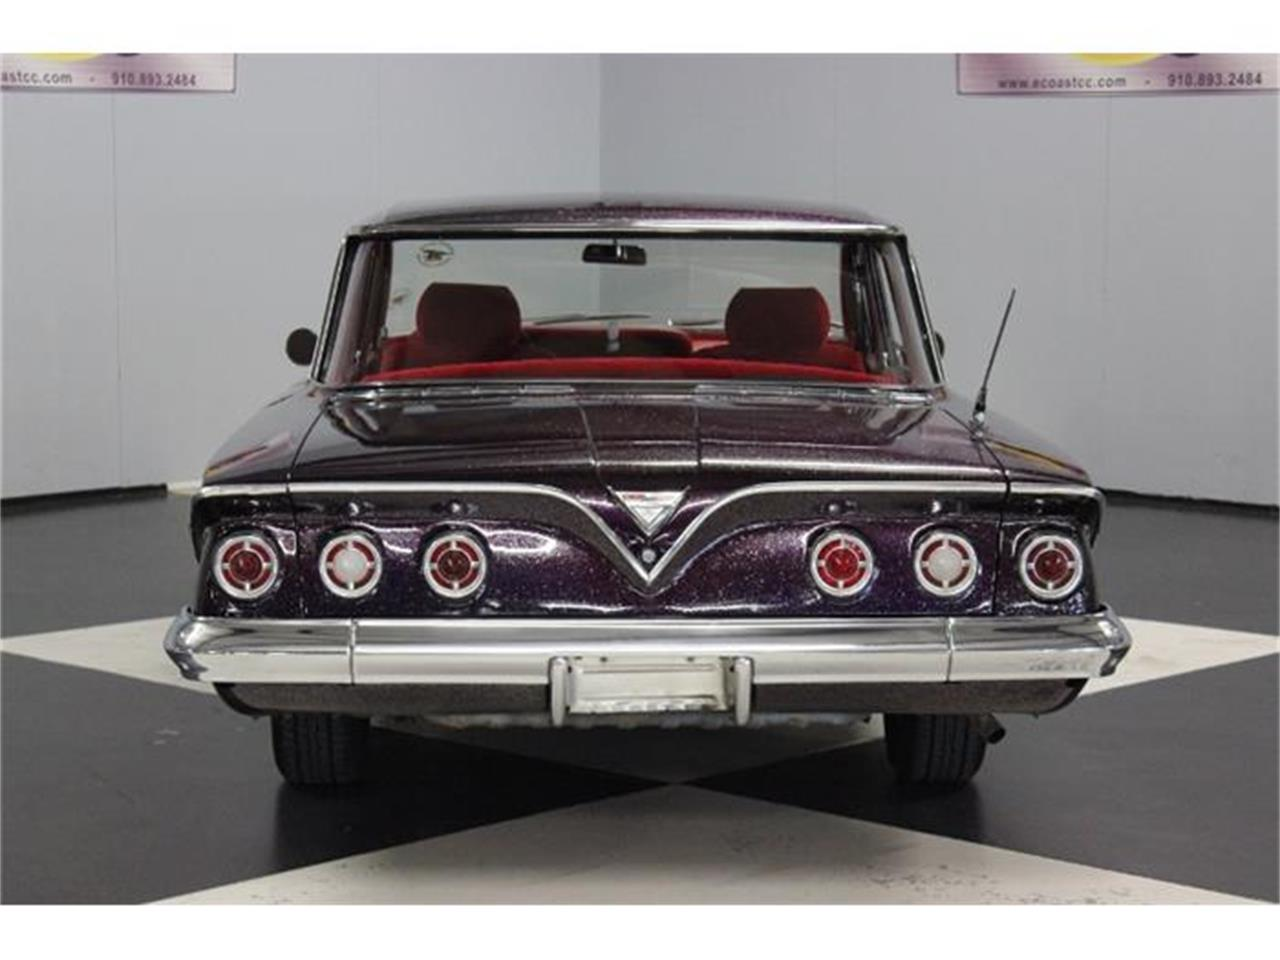 Large Picture of 1961 Chevrolet Impala located in North Carolina - $12,000.00 Offered by East Coast Classic Cars - FPXW